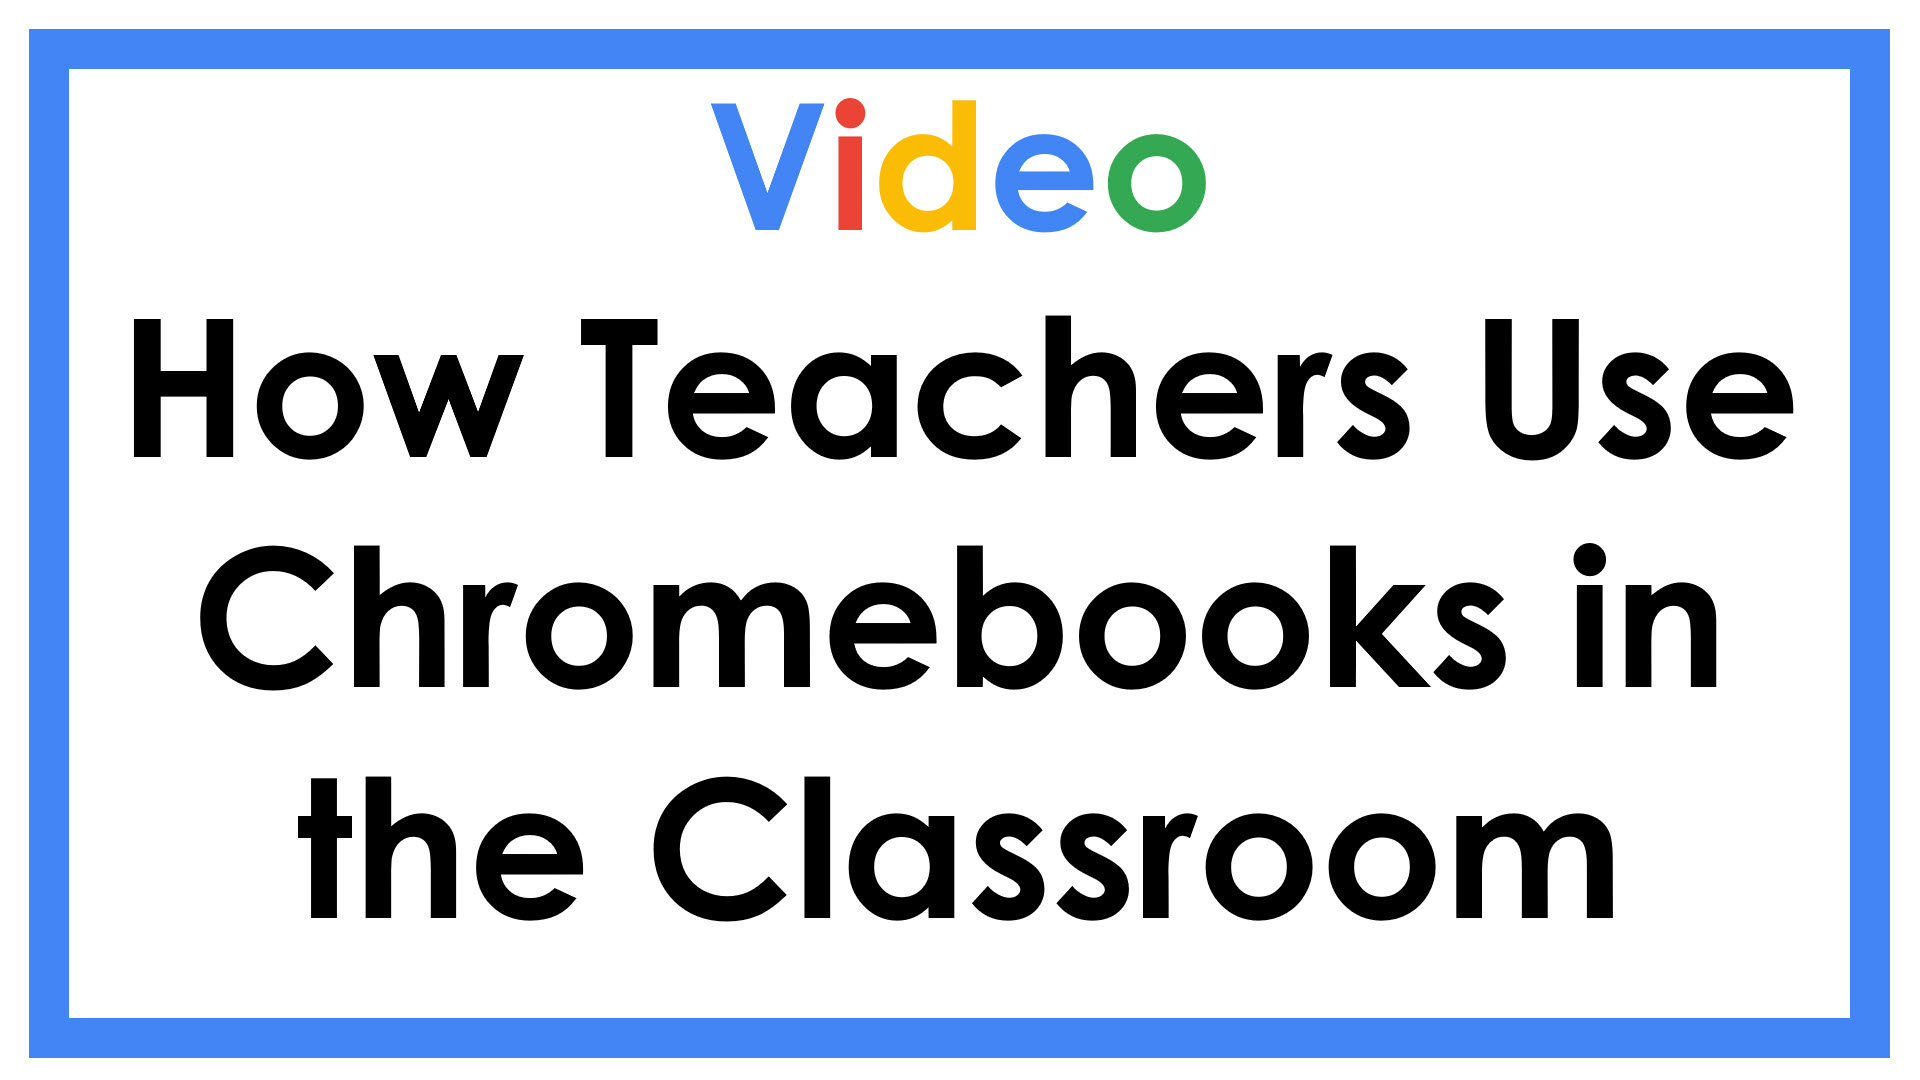 How Teachers Use Chromebooks in the Classroom